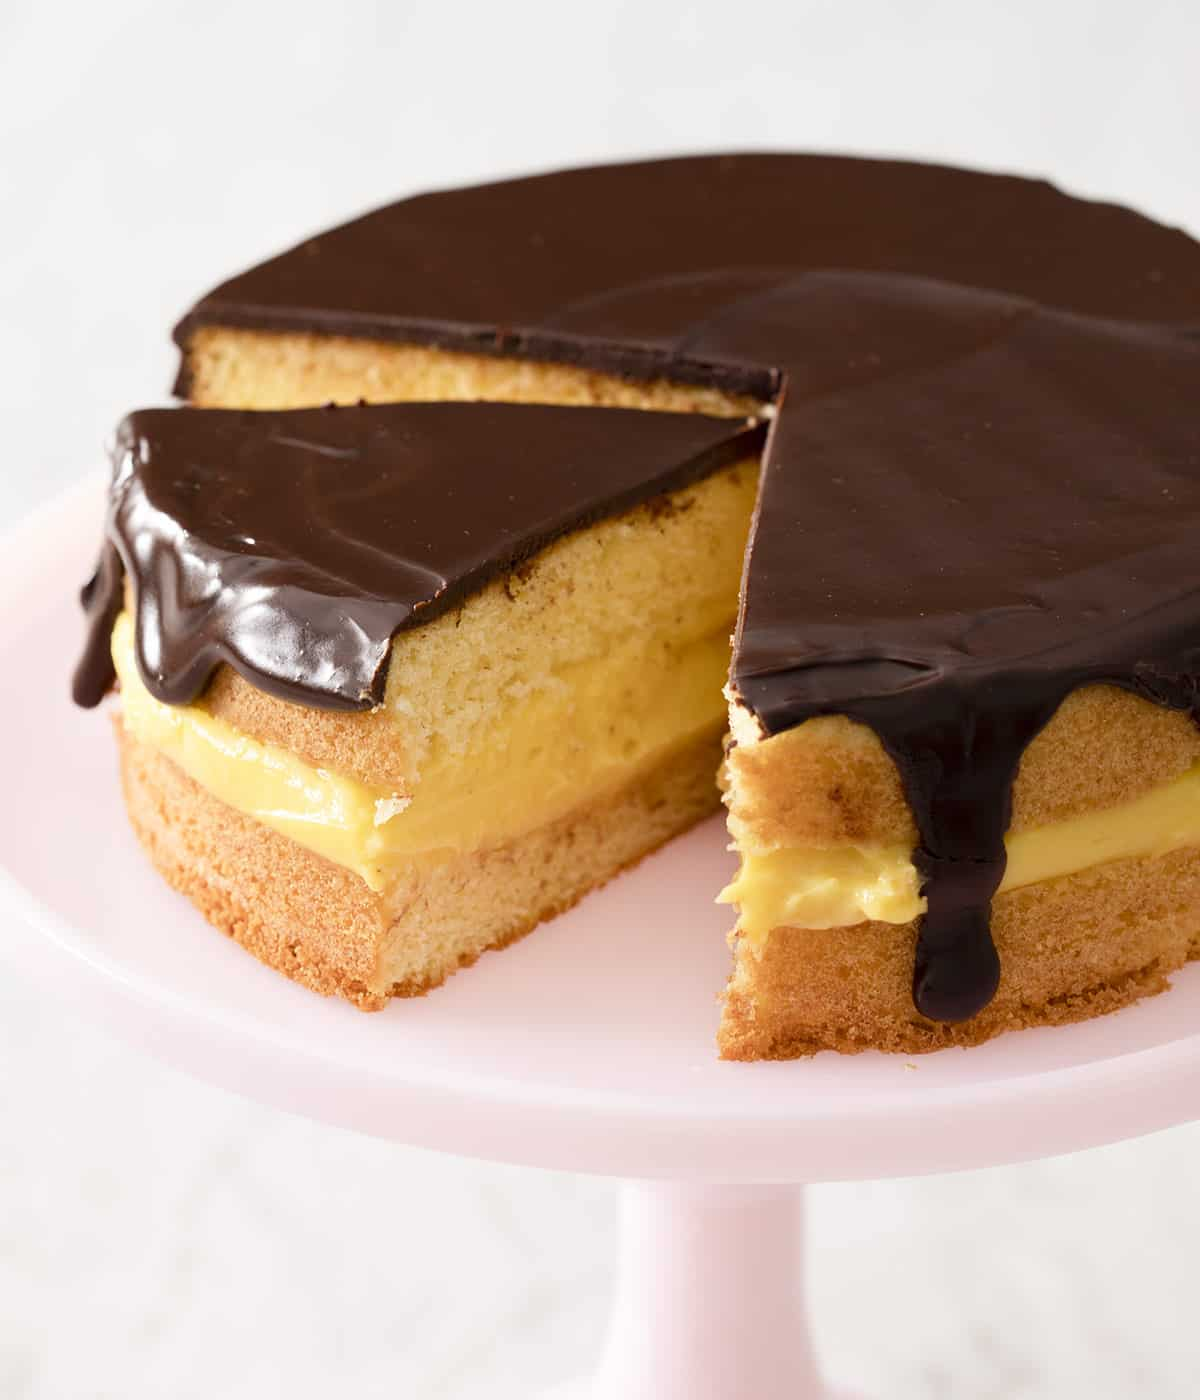 Boston cream pie with some pieces cut out on a cake stand.